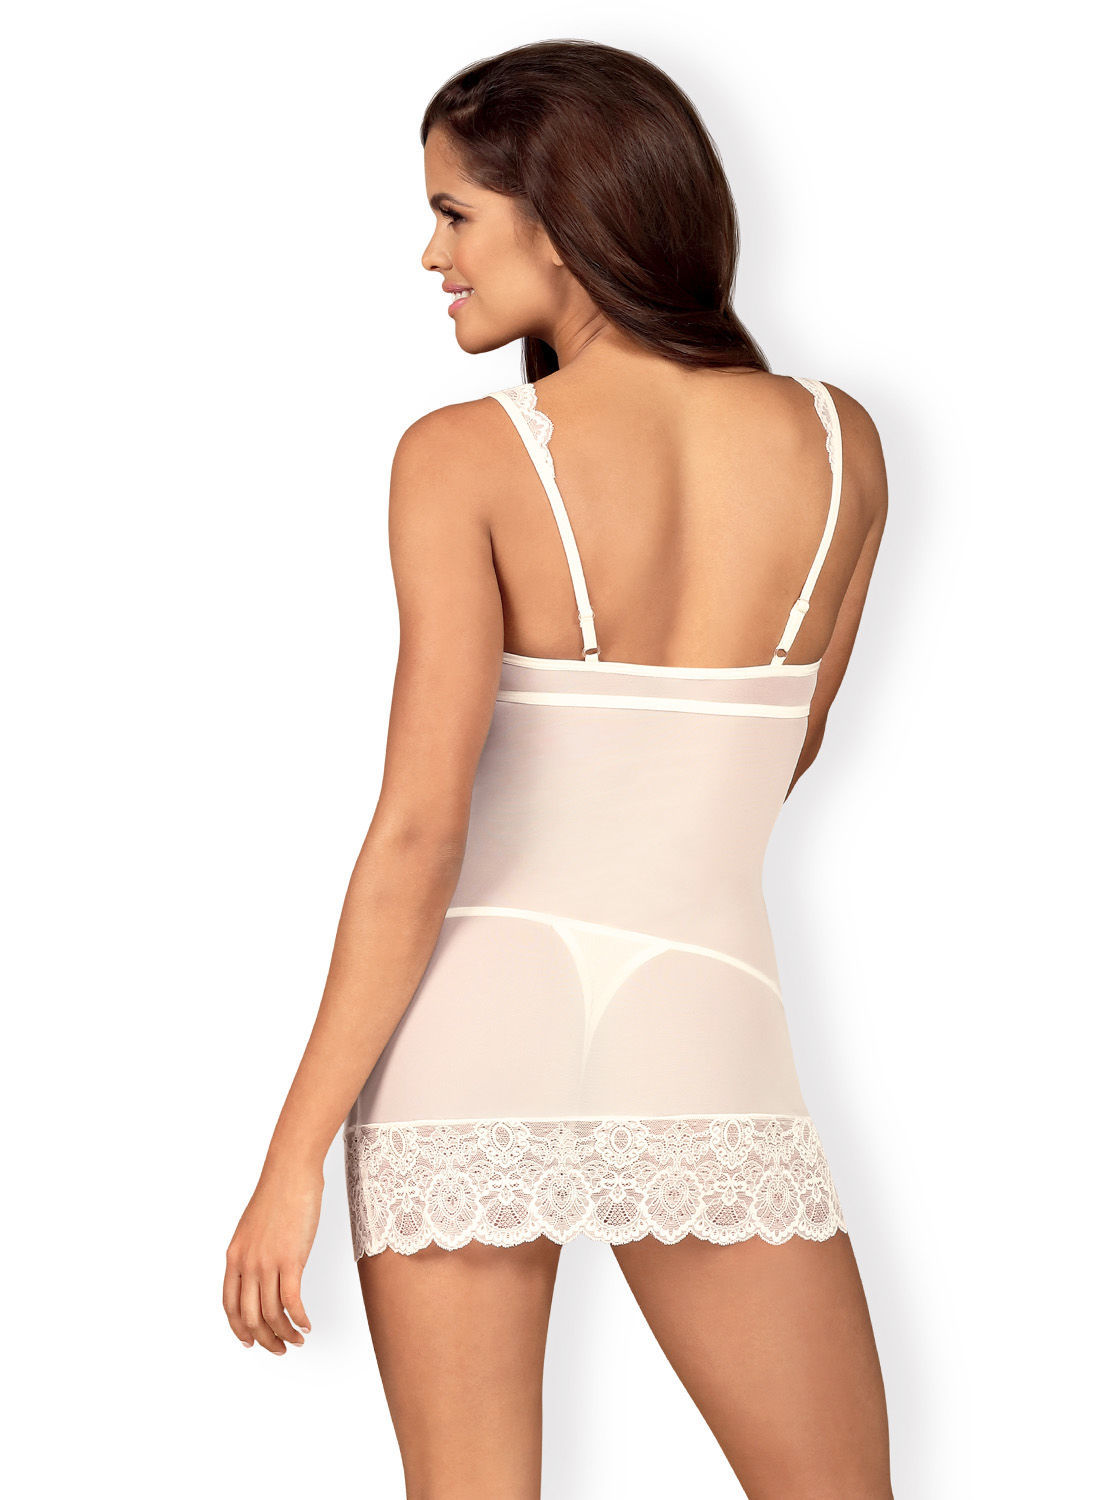 Image de 853-CHE - Chemise & Matching Thong (in Black or White) - XXL